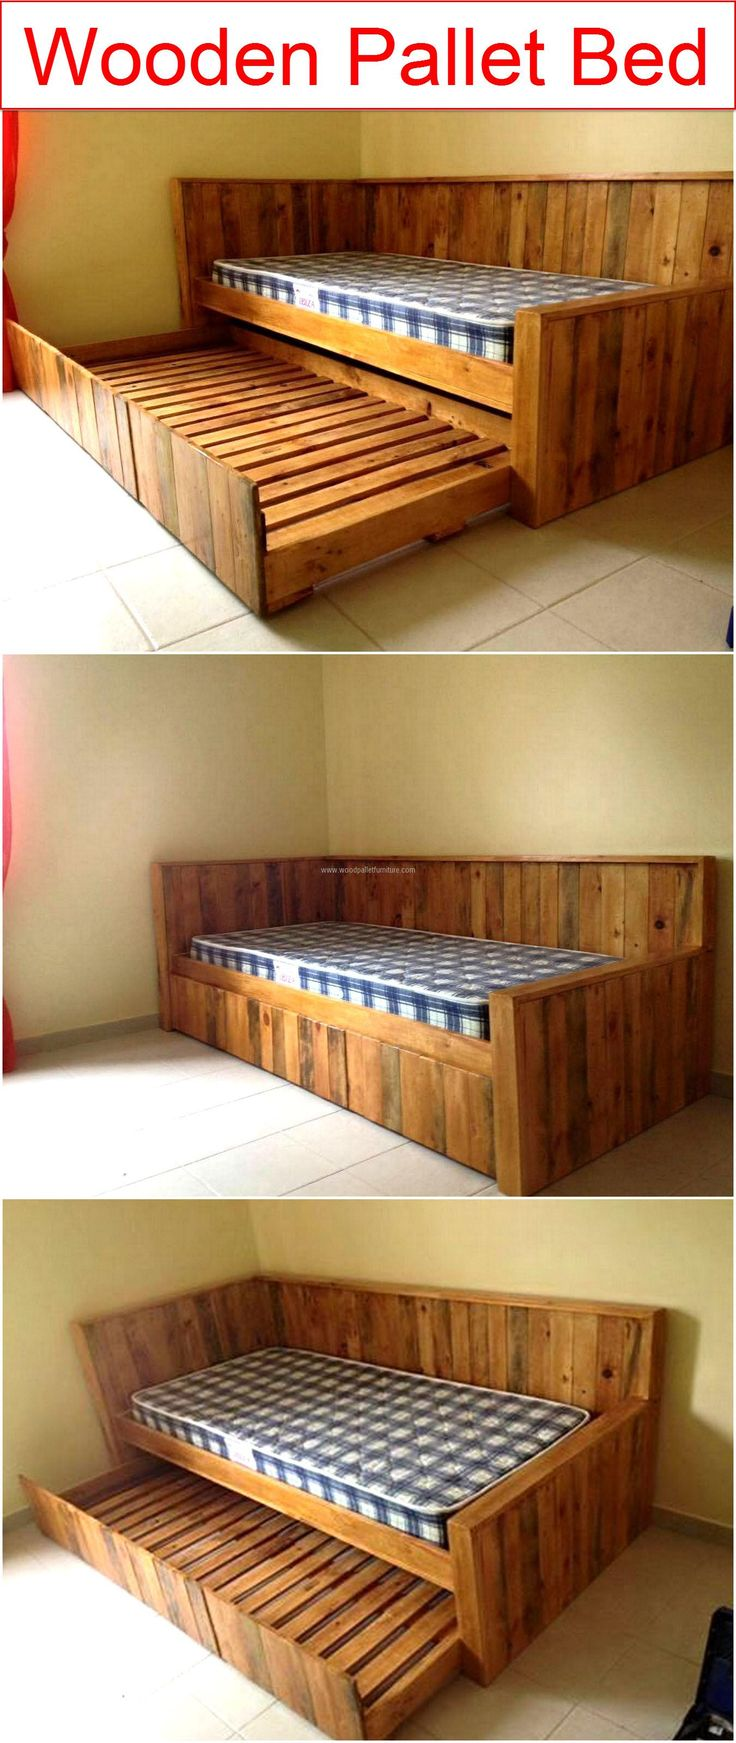 Single pallet bed frame - Wooden Pallet Bed